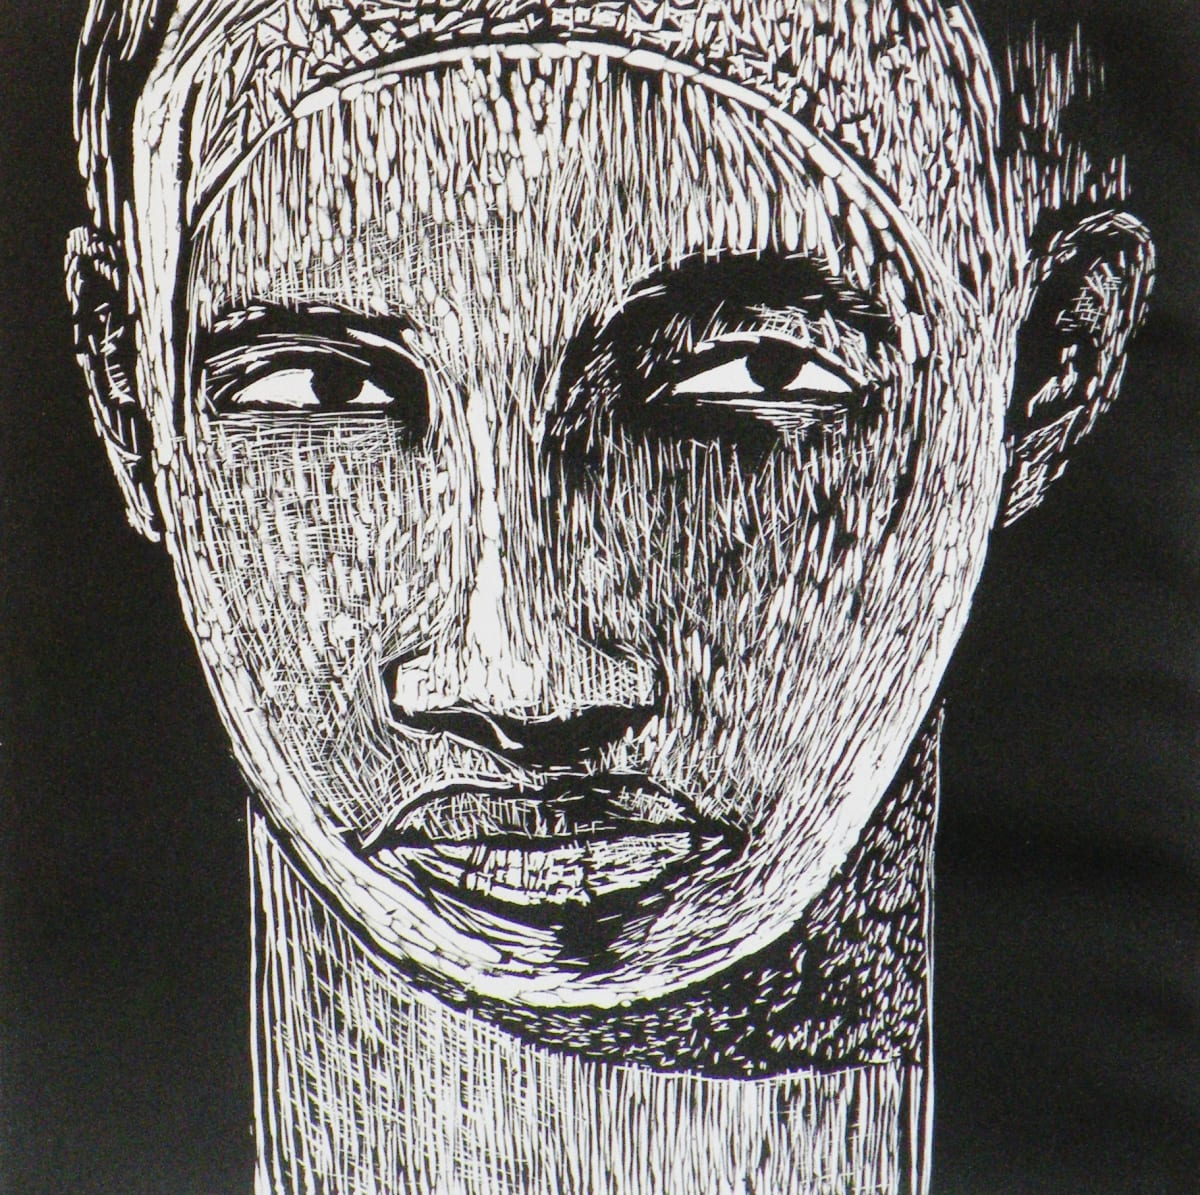 Samella Lewis I See You, 2005 Linocut 25 1/2 x 20 1/2 I See You